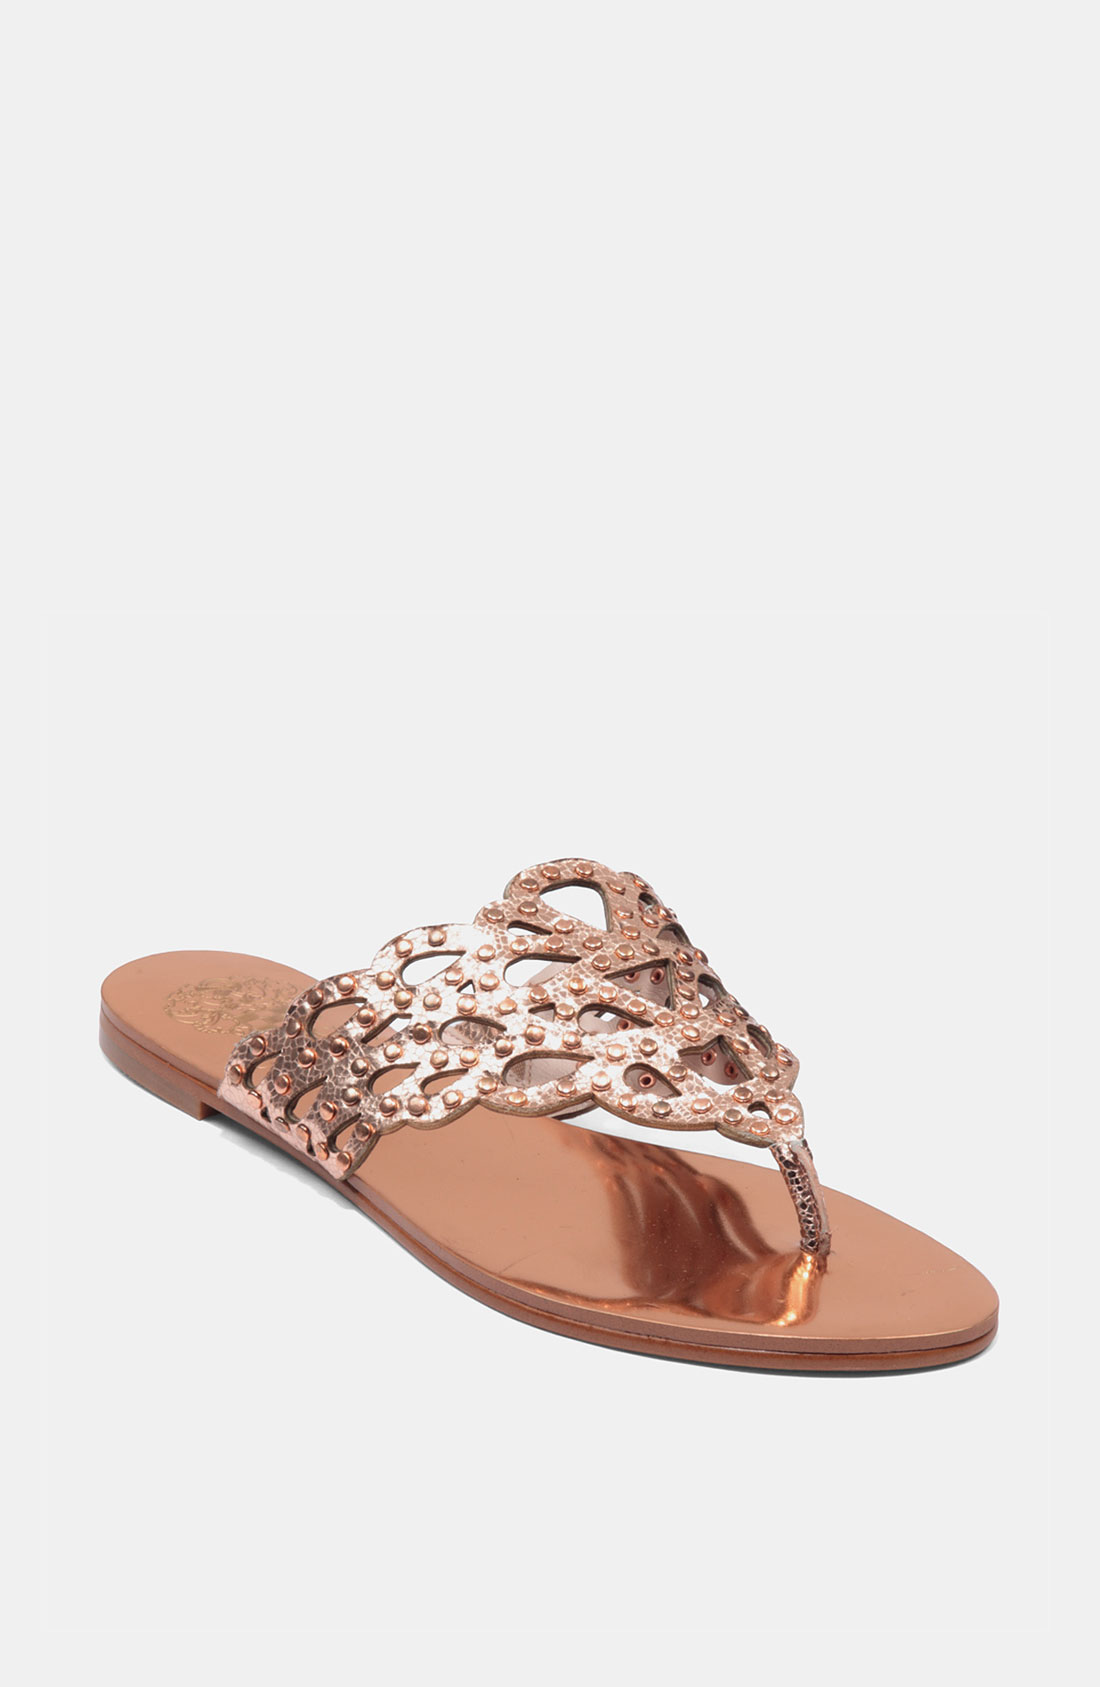 Vince Camuto Elian Sandal In Pink Rose Gold Lyst